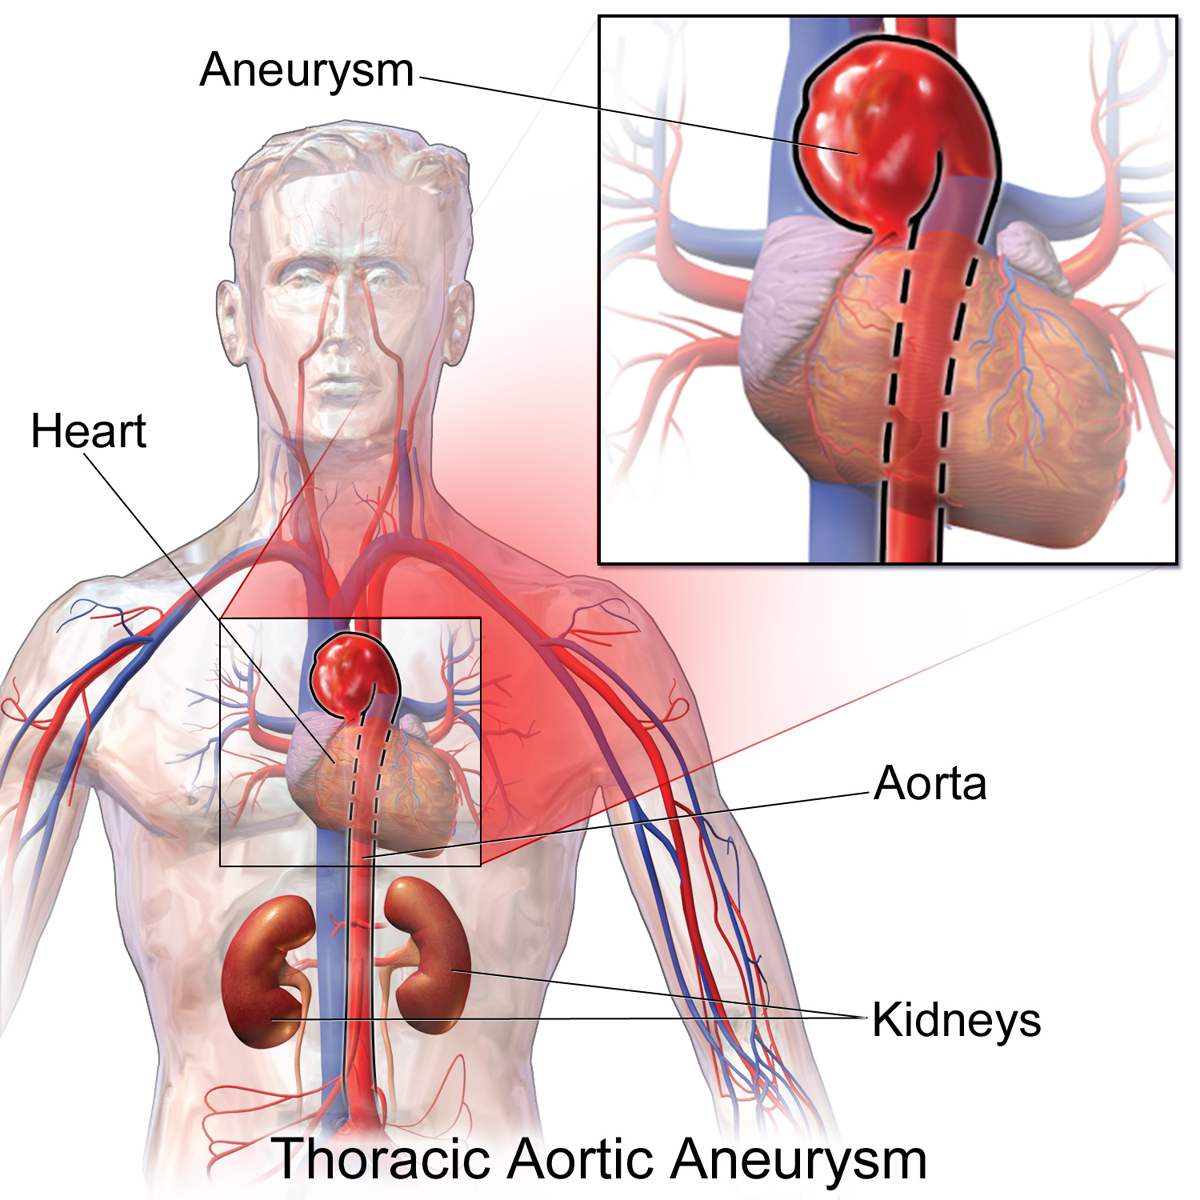 Thoracic aortic aneurysm - Wikipedia